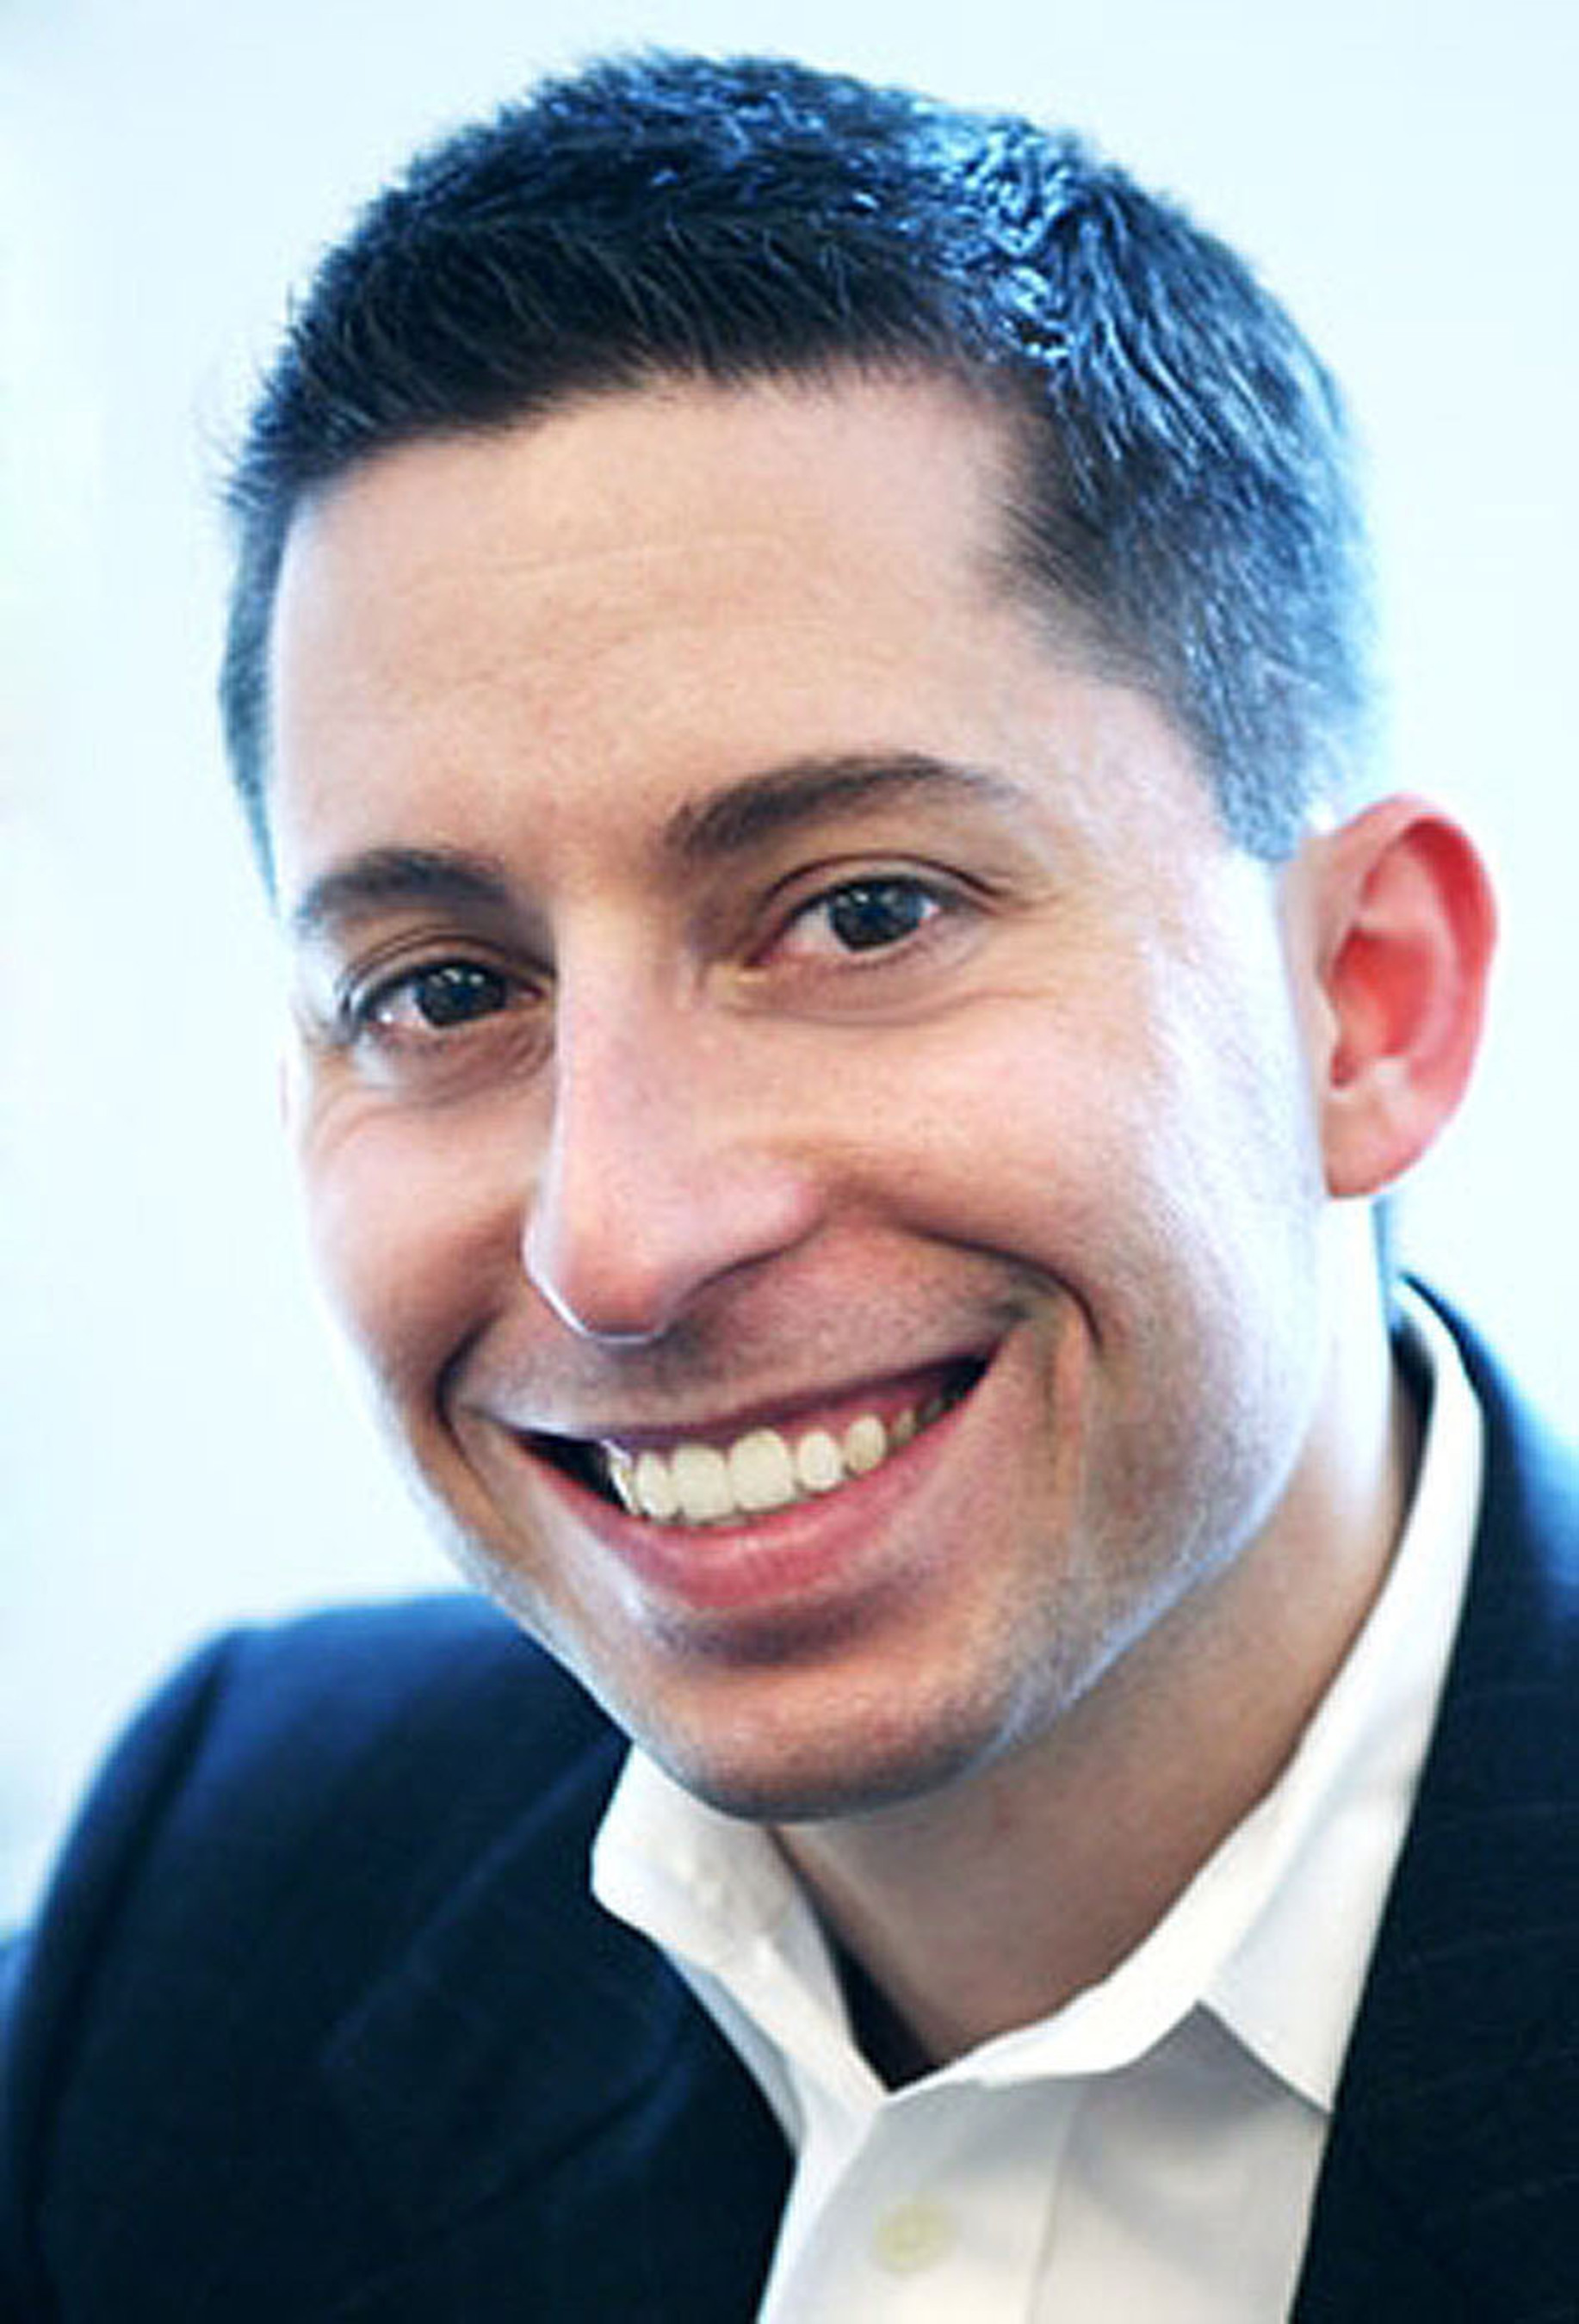 PR Newswire's Director of Emerging Media Michael Pranikoff will present 'PR in a Web 2.0 World' -- an interactive discussion on the how Web 2.0 can bring an organization's communications program to the next level, in Richmond, VA on June 17.  (PRNewsFoto/PR Newswire Association LLC)